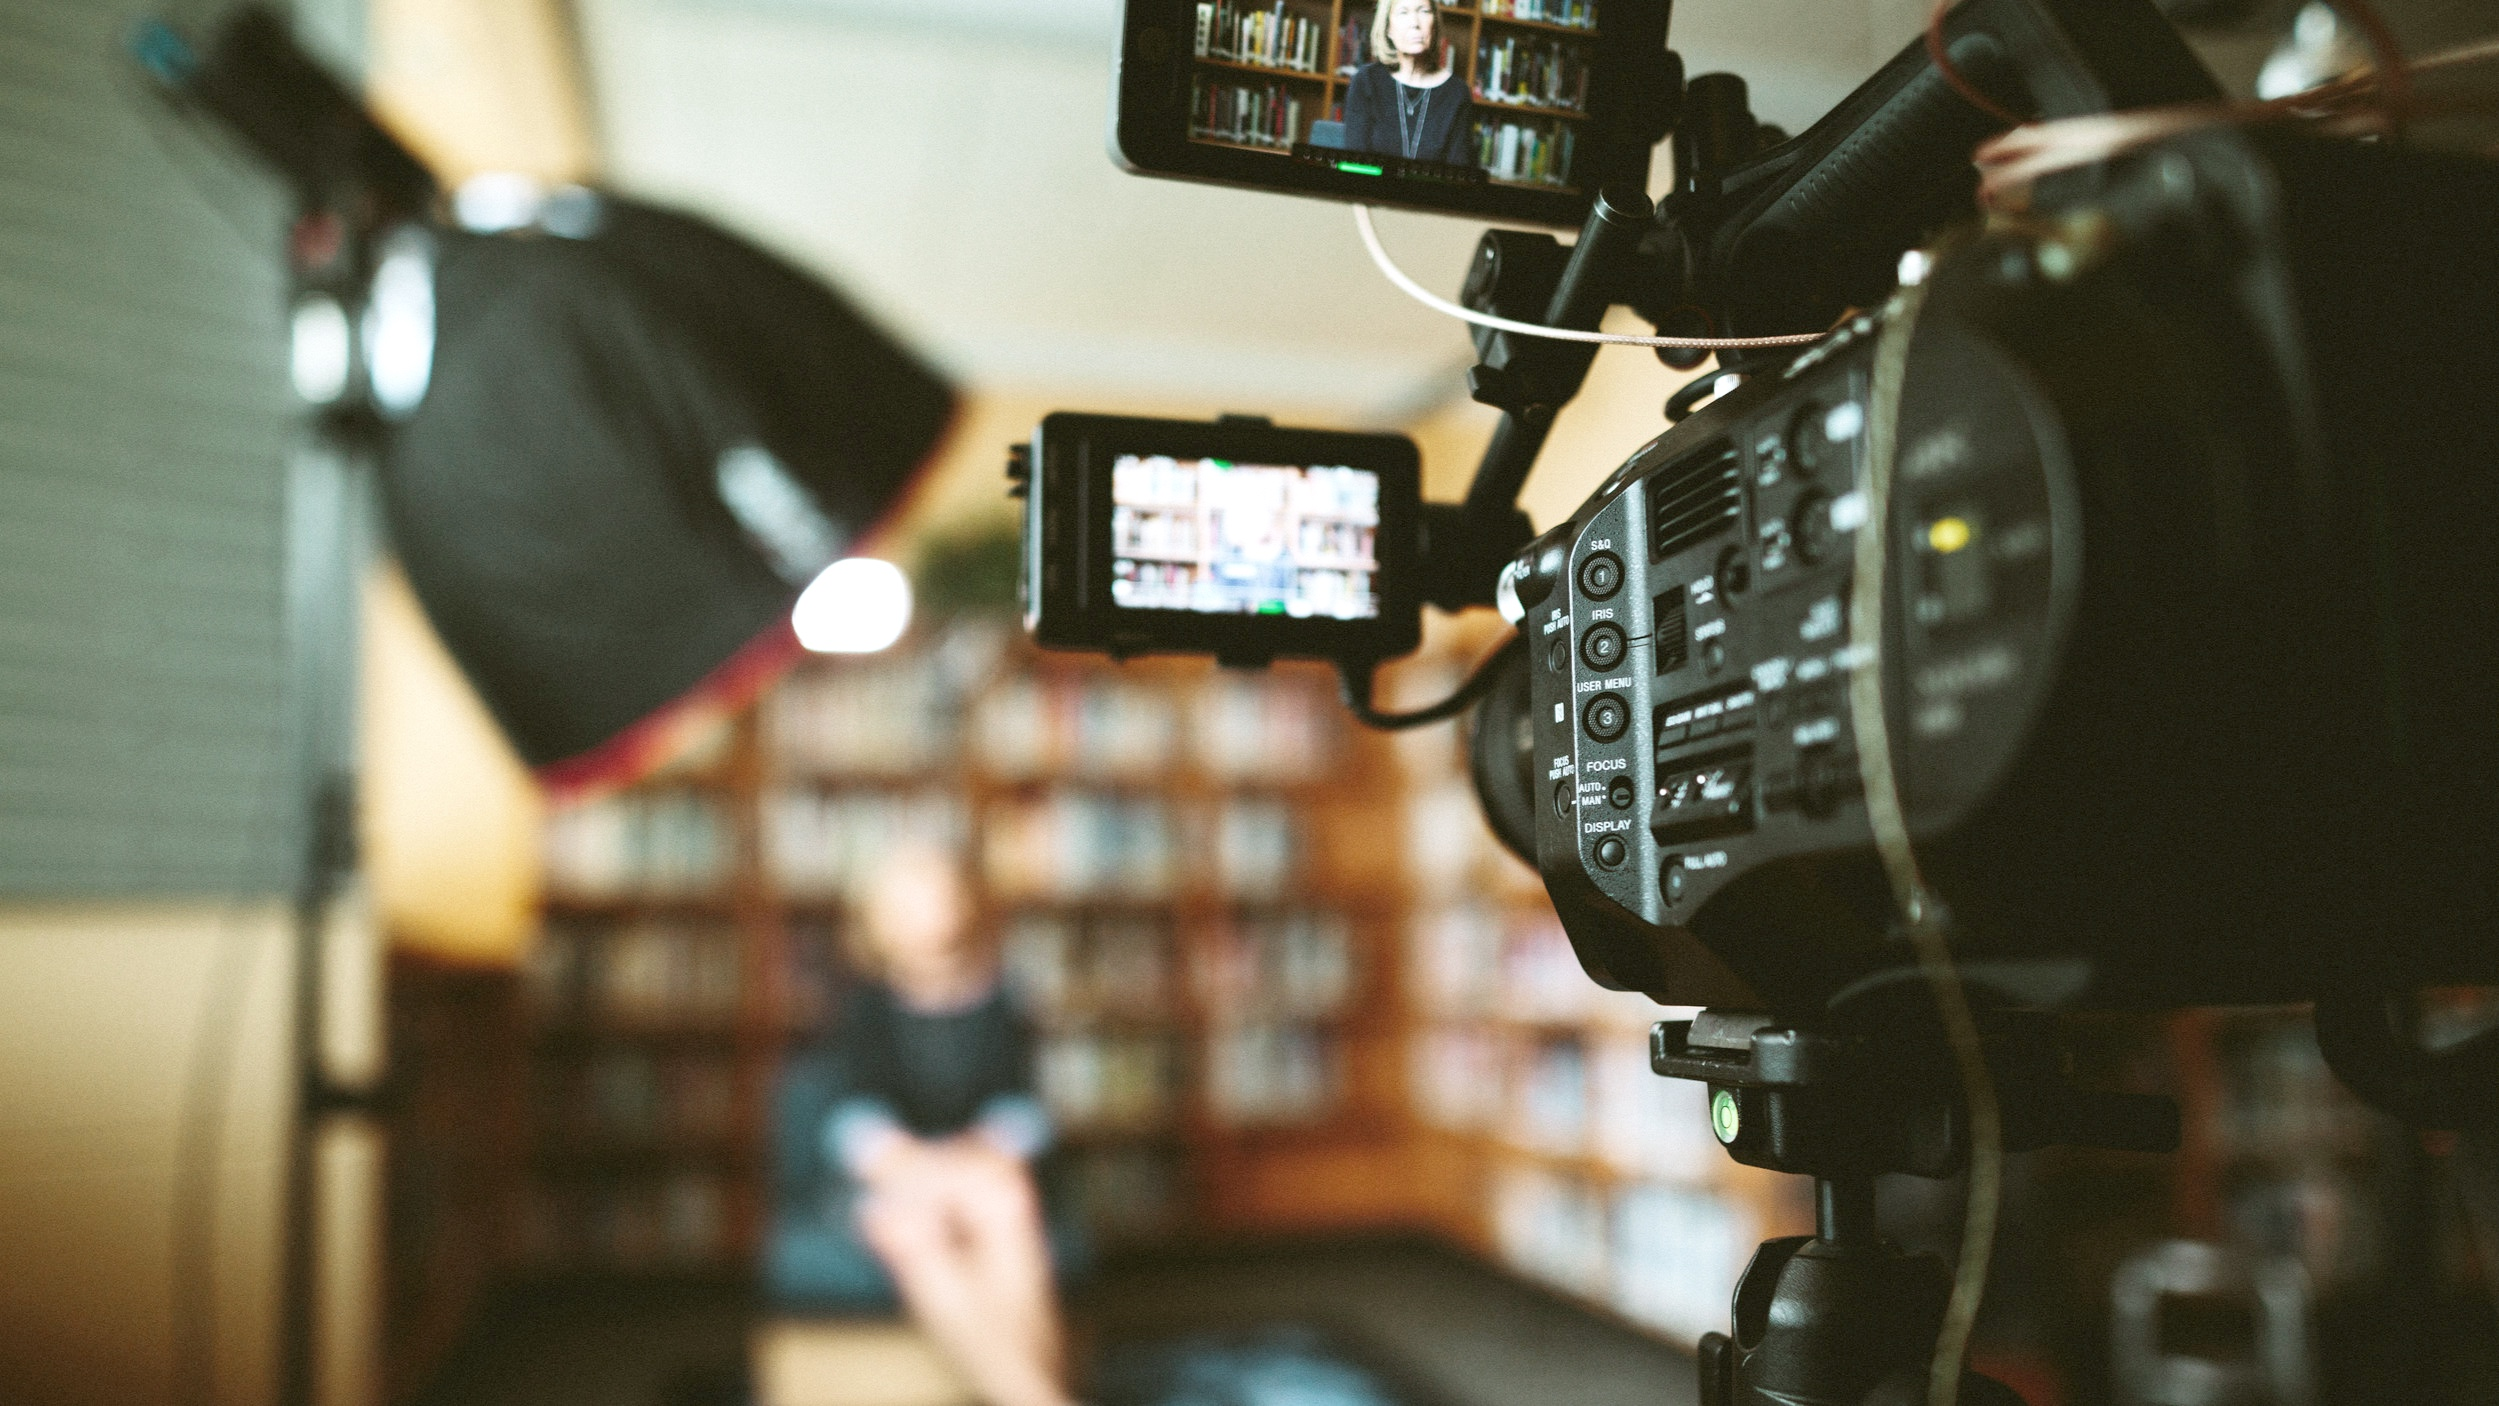 PROMOTIONAL VIDEOS - Share your passion for your brand, products and services by speaking directly to viewers. Or put real-life, satisfied customers front and centre and let them tell your audience how you've helped them. Our documentary-style promotional videos offer authentic storytelling that resonates with viewers.